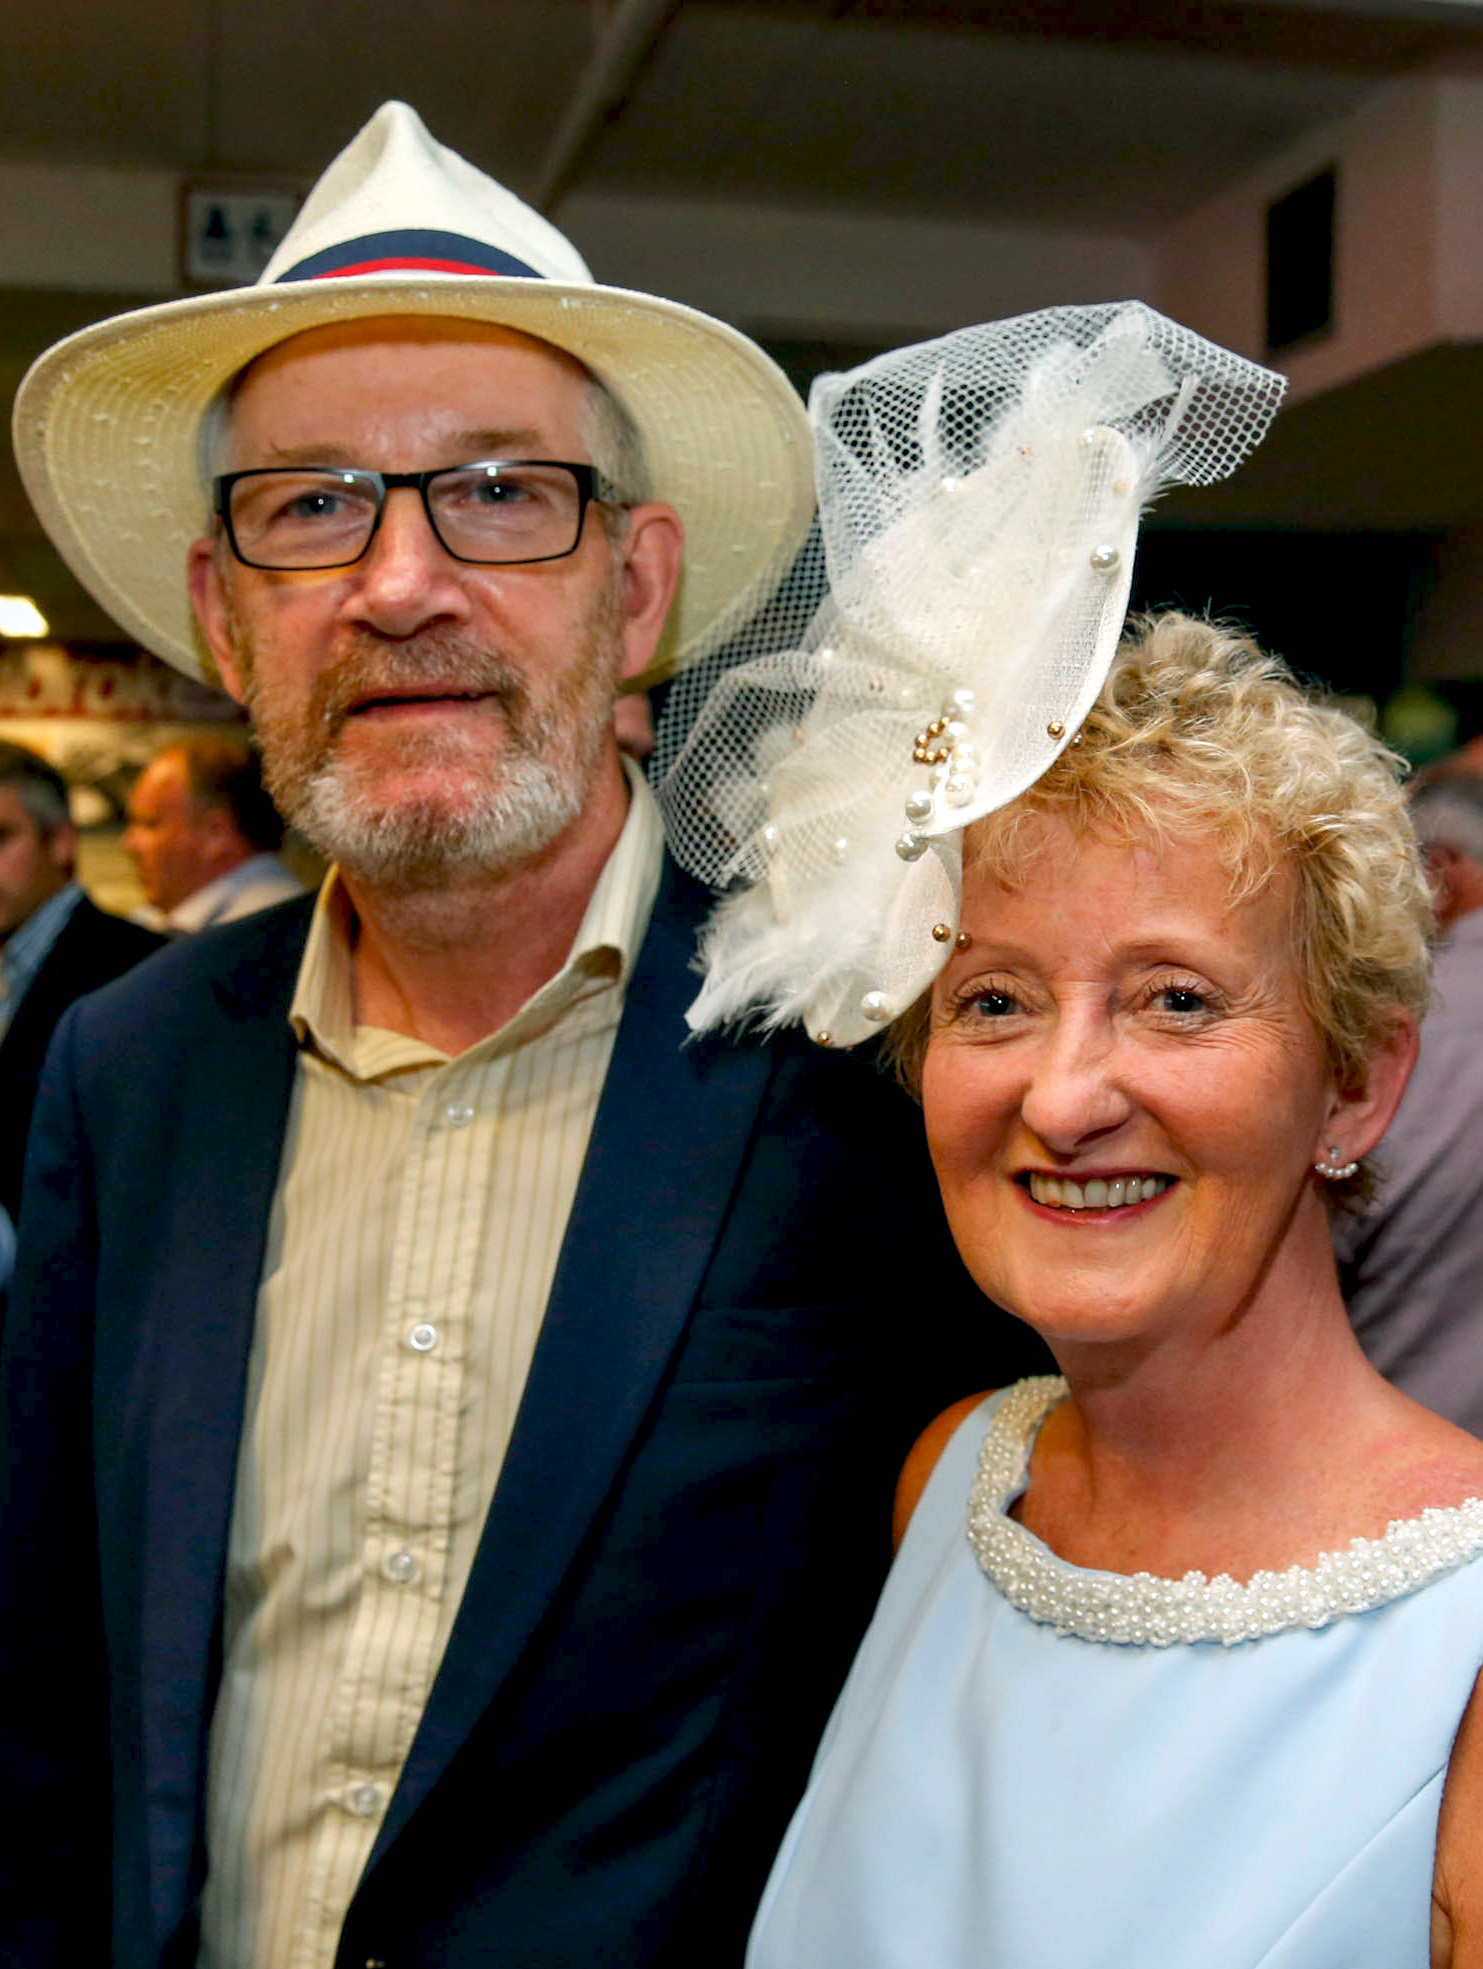 11-6-16 coral.ie Race Day at Limerick Racecourse.Declan and Anne McGuire, Murroe.Picture: Keith Wiseman